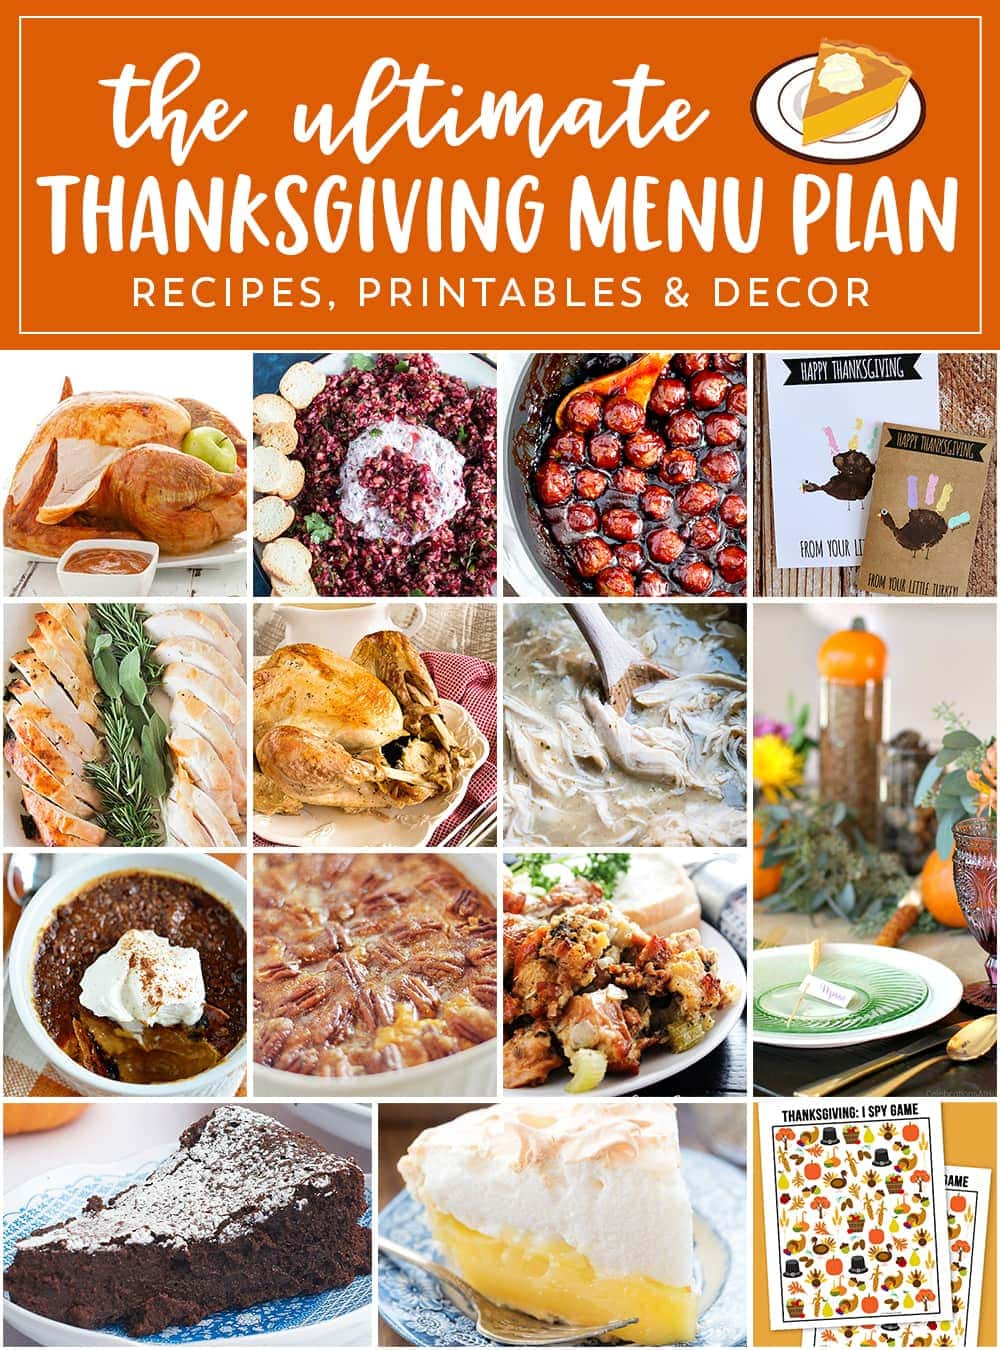 The Ultimate Thanksgiving Menu Plan includes 11 recipes from appetizers and sides to turkey and desserts, how to set the table and printables for the kids!